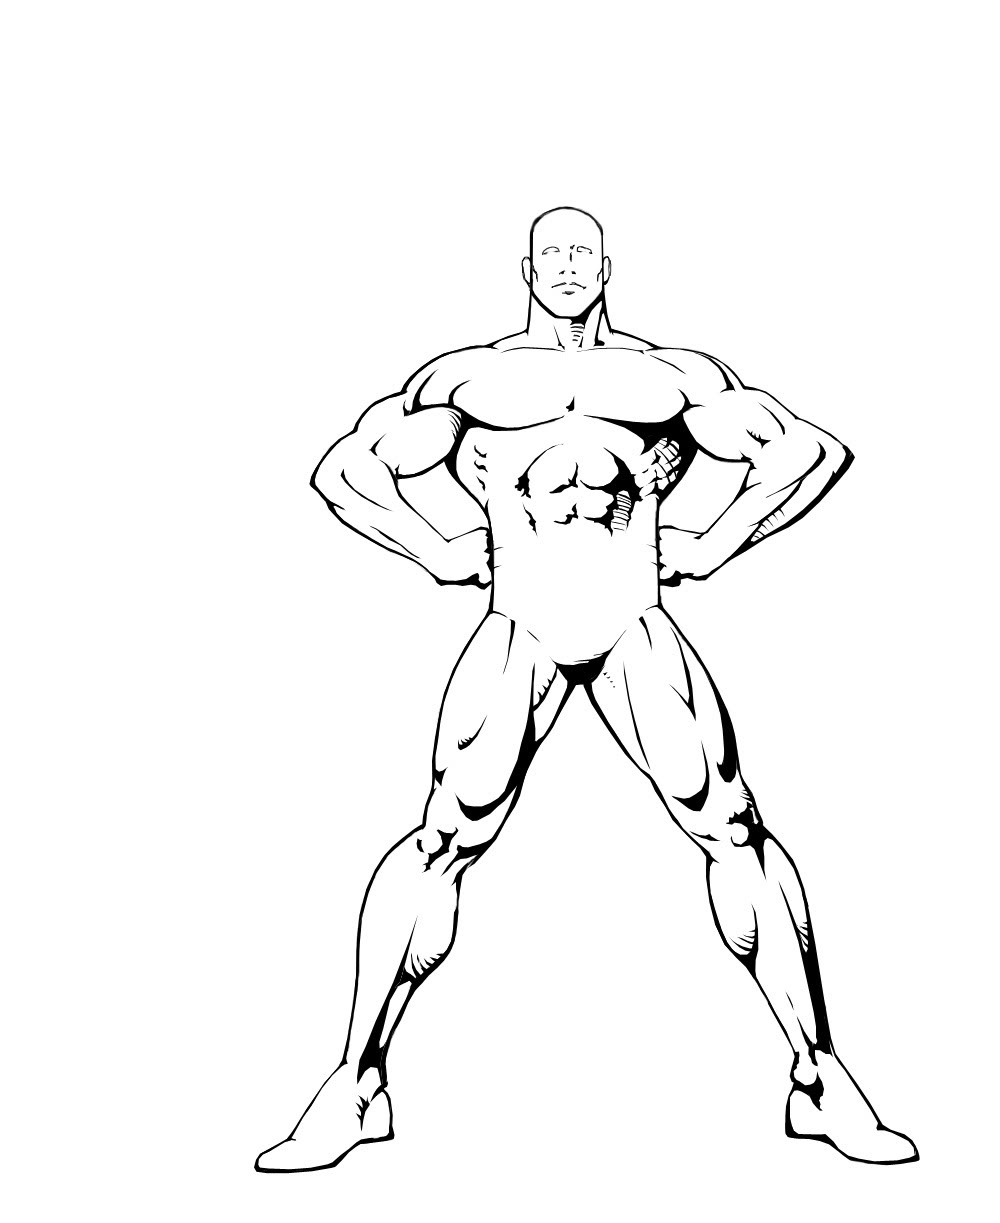 1000x1223 Outline Drawing Of Human Body Character Or Human Form Outlines